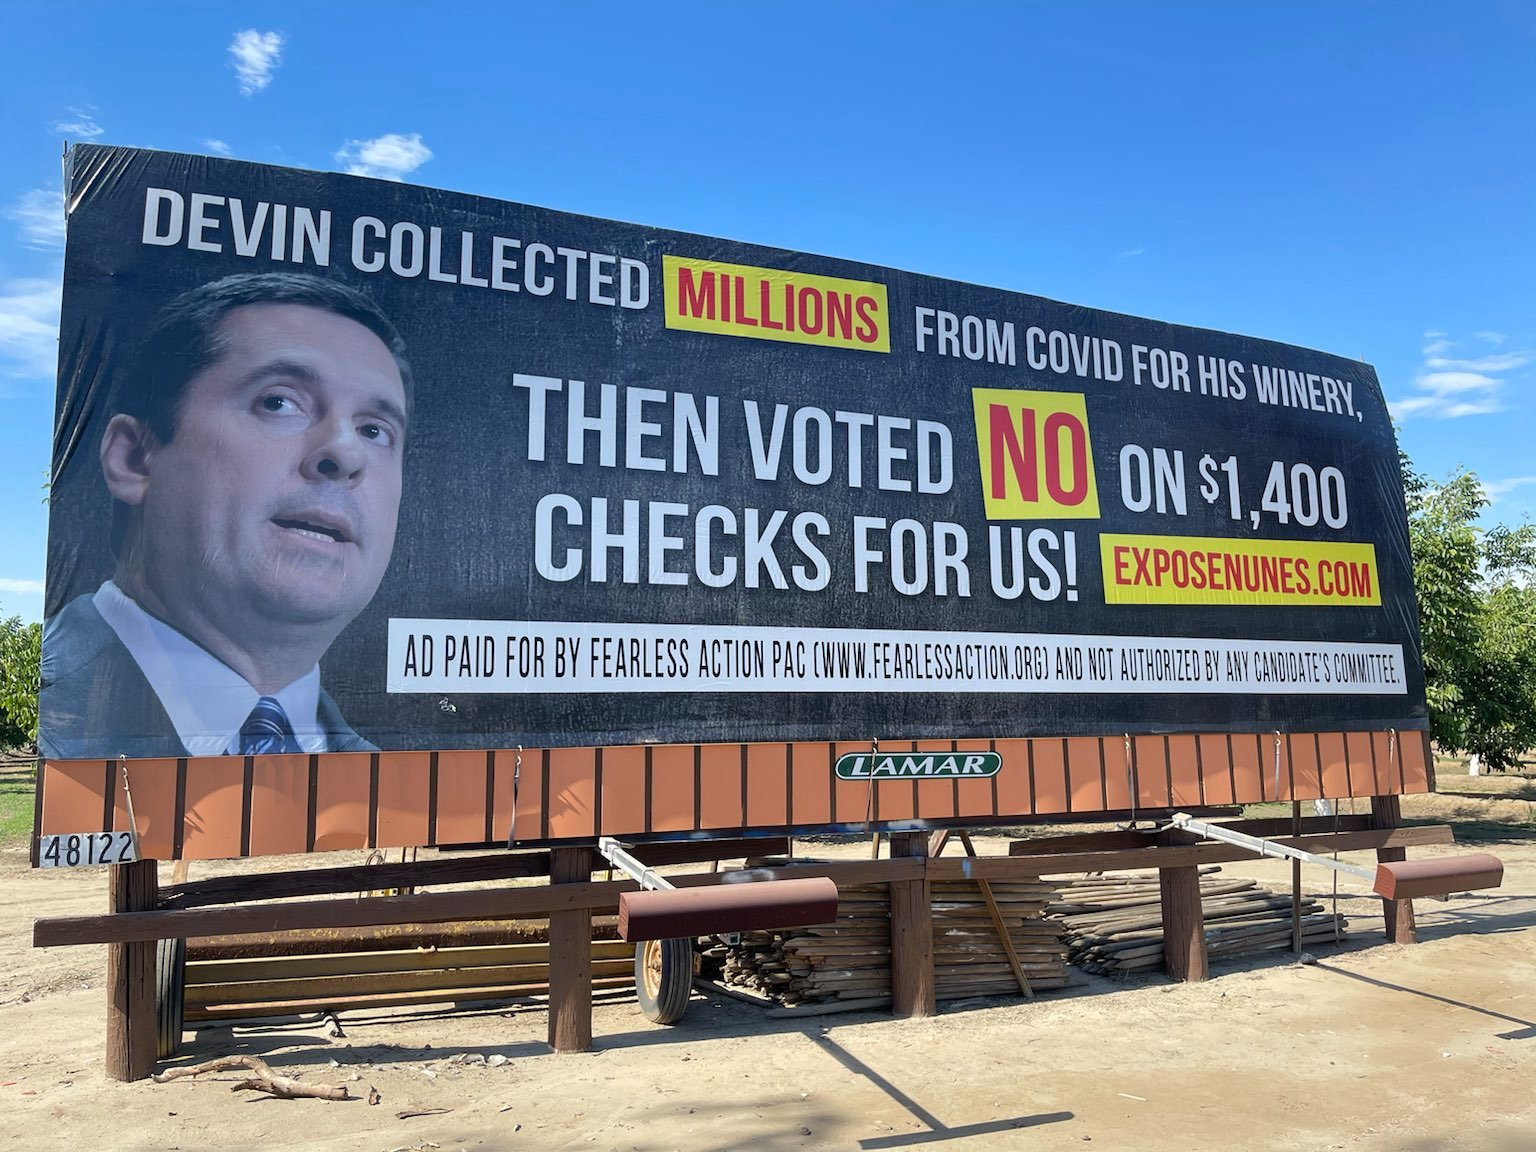 Another dishonest Devin billboard goes up thanks to Fearless Action